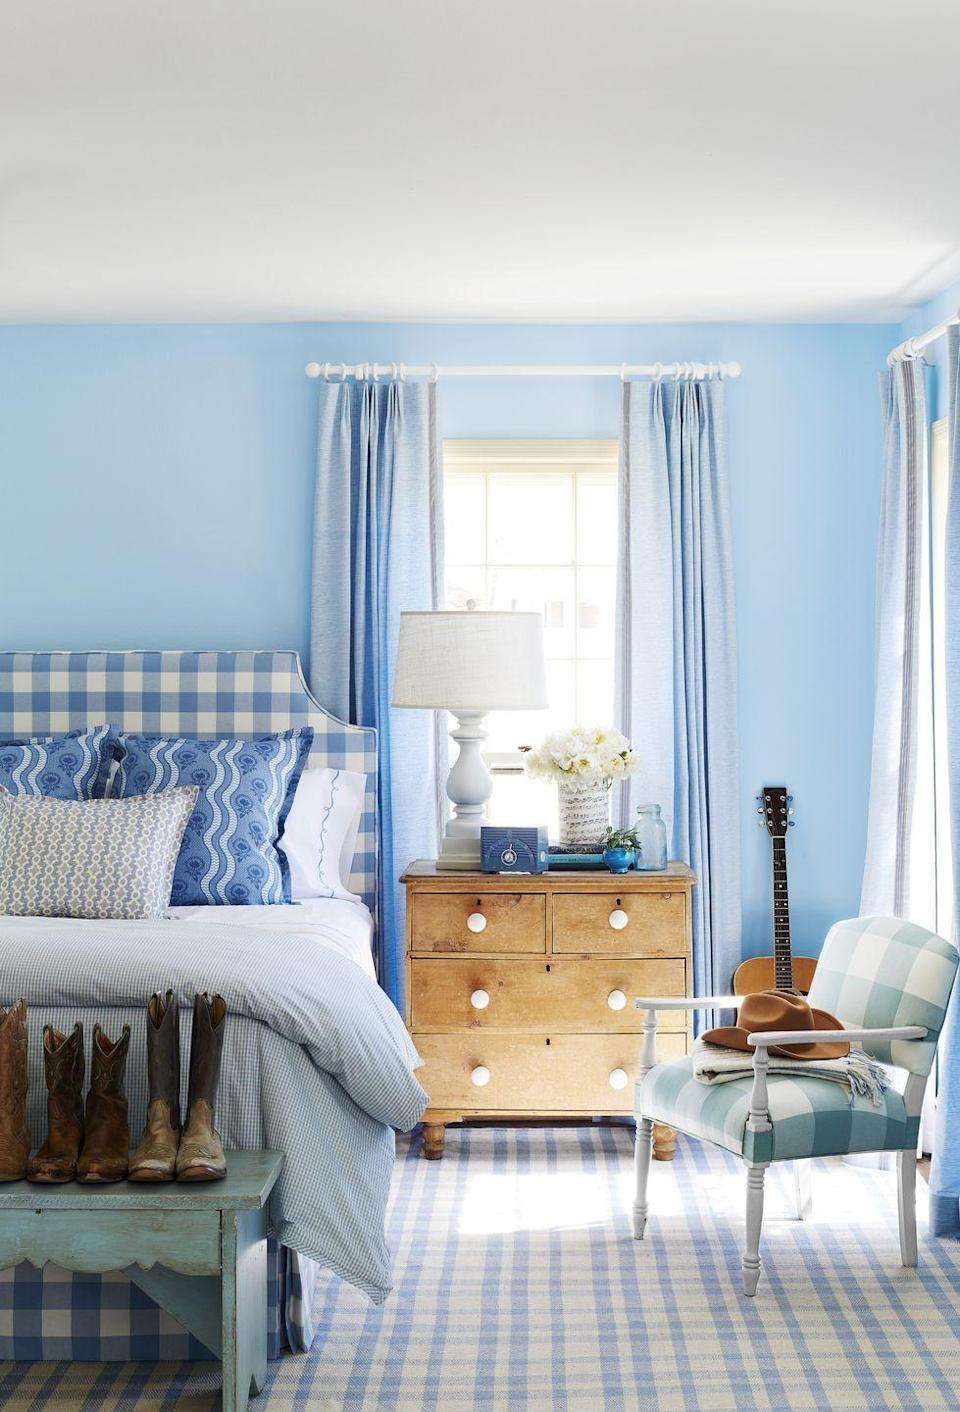 """<p>From chambray-like draperies and a periwinkle-tinged rug to a blueberry-checked headboard and cornflower throw pillows—a major wash of all things blue makes for the perfect bedroom. """"Bright colors boost your mood, so choosing this for a bedroom is a sure way to wake up feeling energized,"""" says EasyCare color expert Cynthia Cornell. """"Try a blue in a bright shade to bring calm and serenity."""" </p><p><strong>Get the Look: </strong><br>Wall Paint Color: <a href=""""https://go.redirectingat.com?id=74968X1596630&url=https%3A%2F%2Fwww.walmart.com%2Fip%2FPRATT-LAMBERT-Z48W00801-16-Interior-Paint-Lake-s-Mirage-Semi-Gloss-1-gal%2F616028059&sref=https%3A%2F%2Fwww.countryliving.com%2Fremodeling-renovation%2Fhome-makeovers%2Fg32468539%2Fbest-bedroom-paint-colors-ideas%2F"""" rel=""""nofollow noopener"""" target=""""_blank"""" data-ylk=""""slk:Lake's Mirage by Pratt & Lambert"""" class=""""link rapid-noclick-resp"""">Lake's Mirage by Pratt & Lambert</a></p>"""